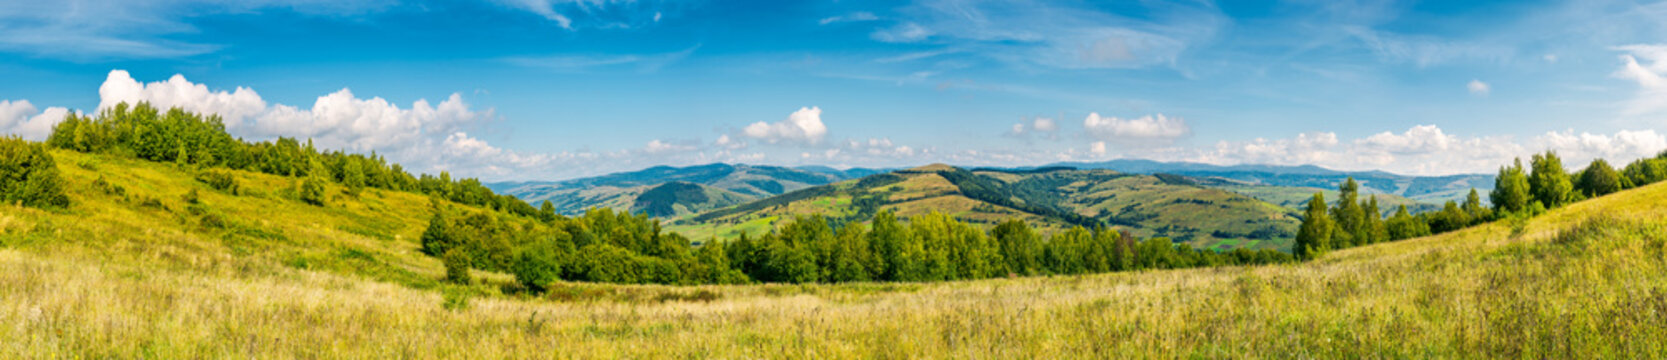 autumnal panorama of mountainous countryside. grassy meadow on a slope. rural fields on the  hill in the distance